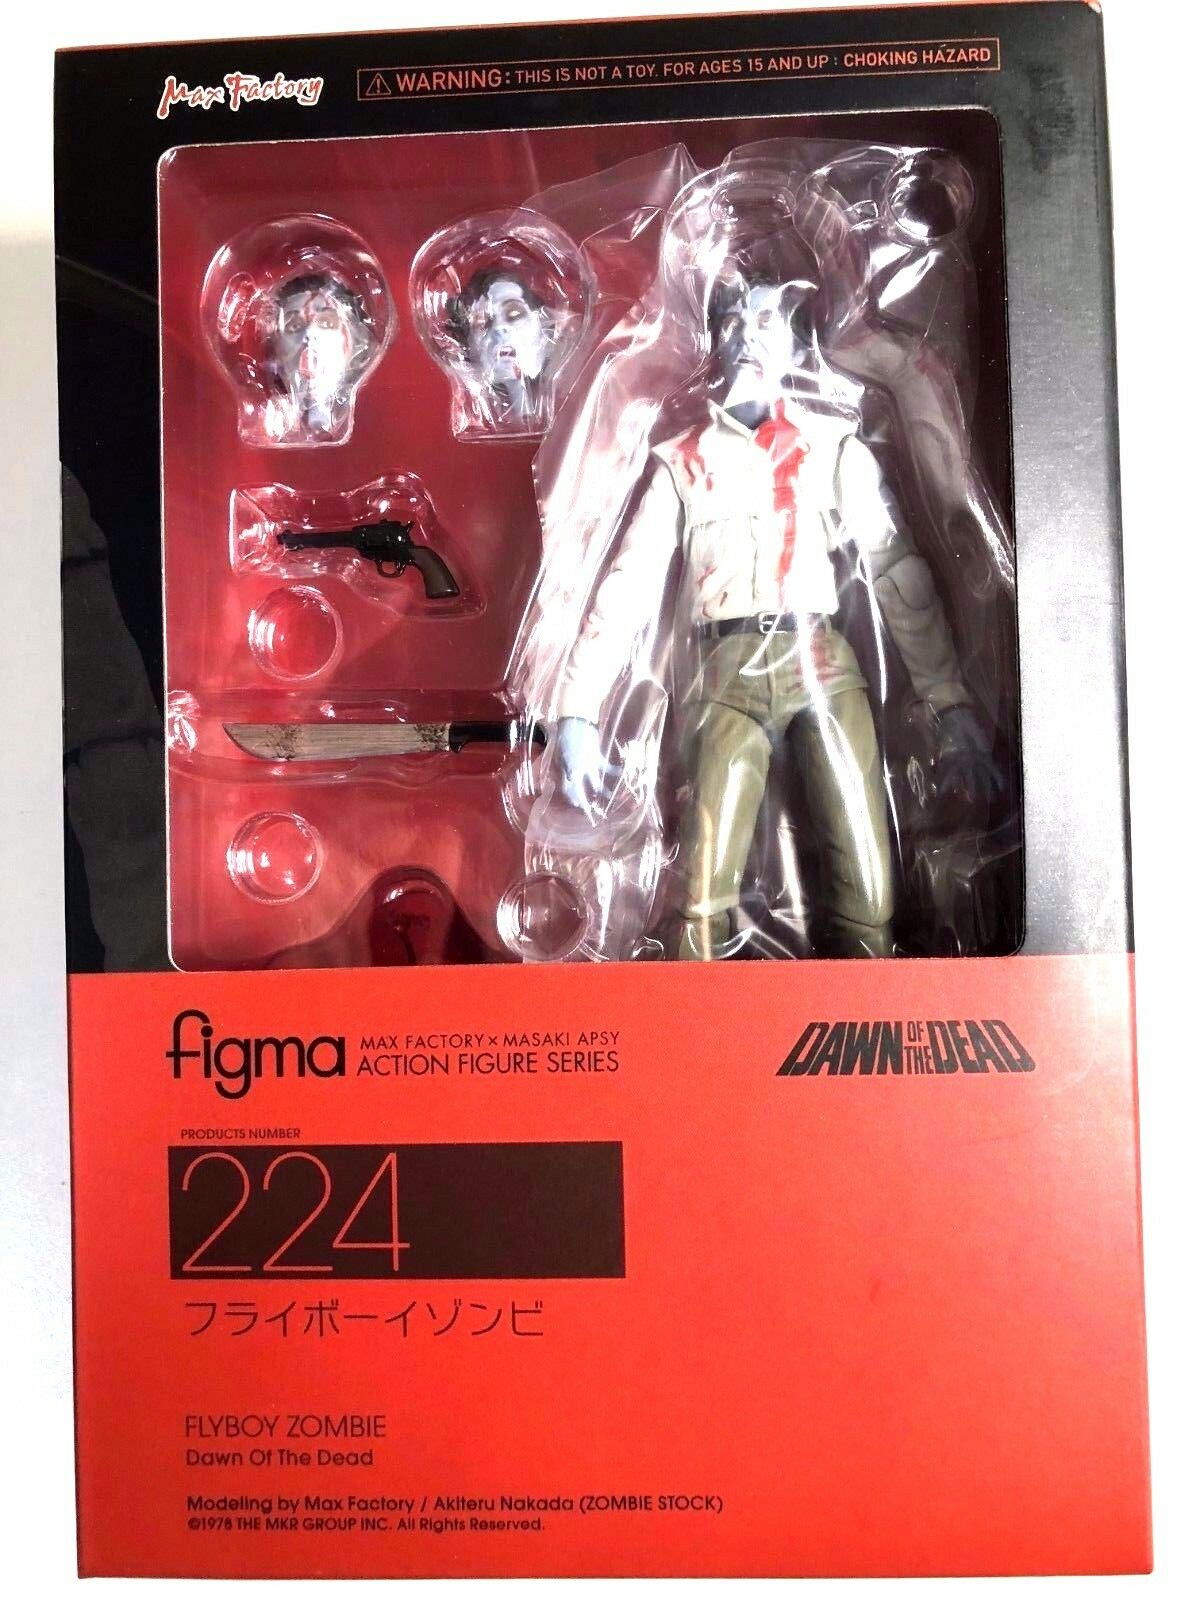 Free Shipping from Japan Authentic Figma Flyboy Zombie  Dawn of the Dead figure